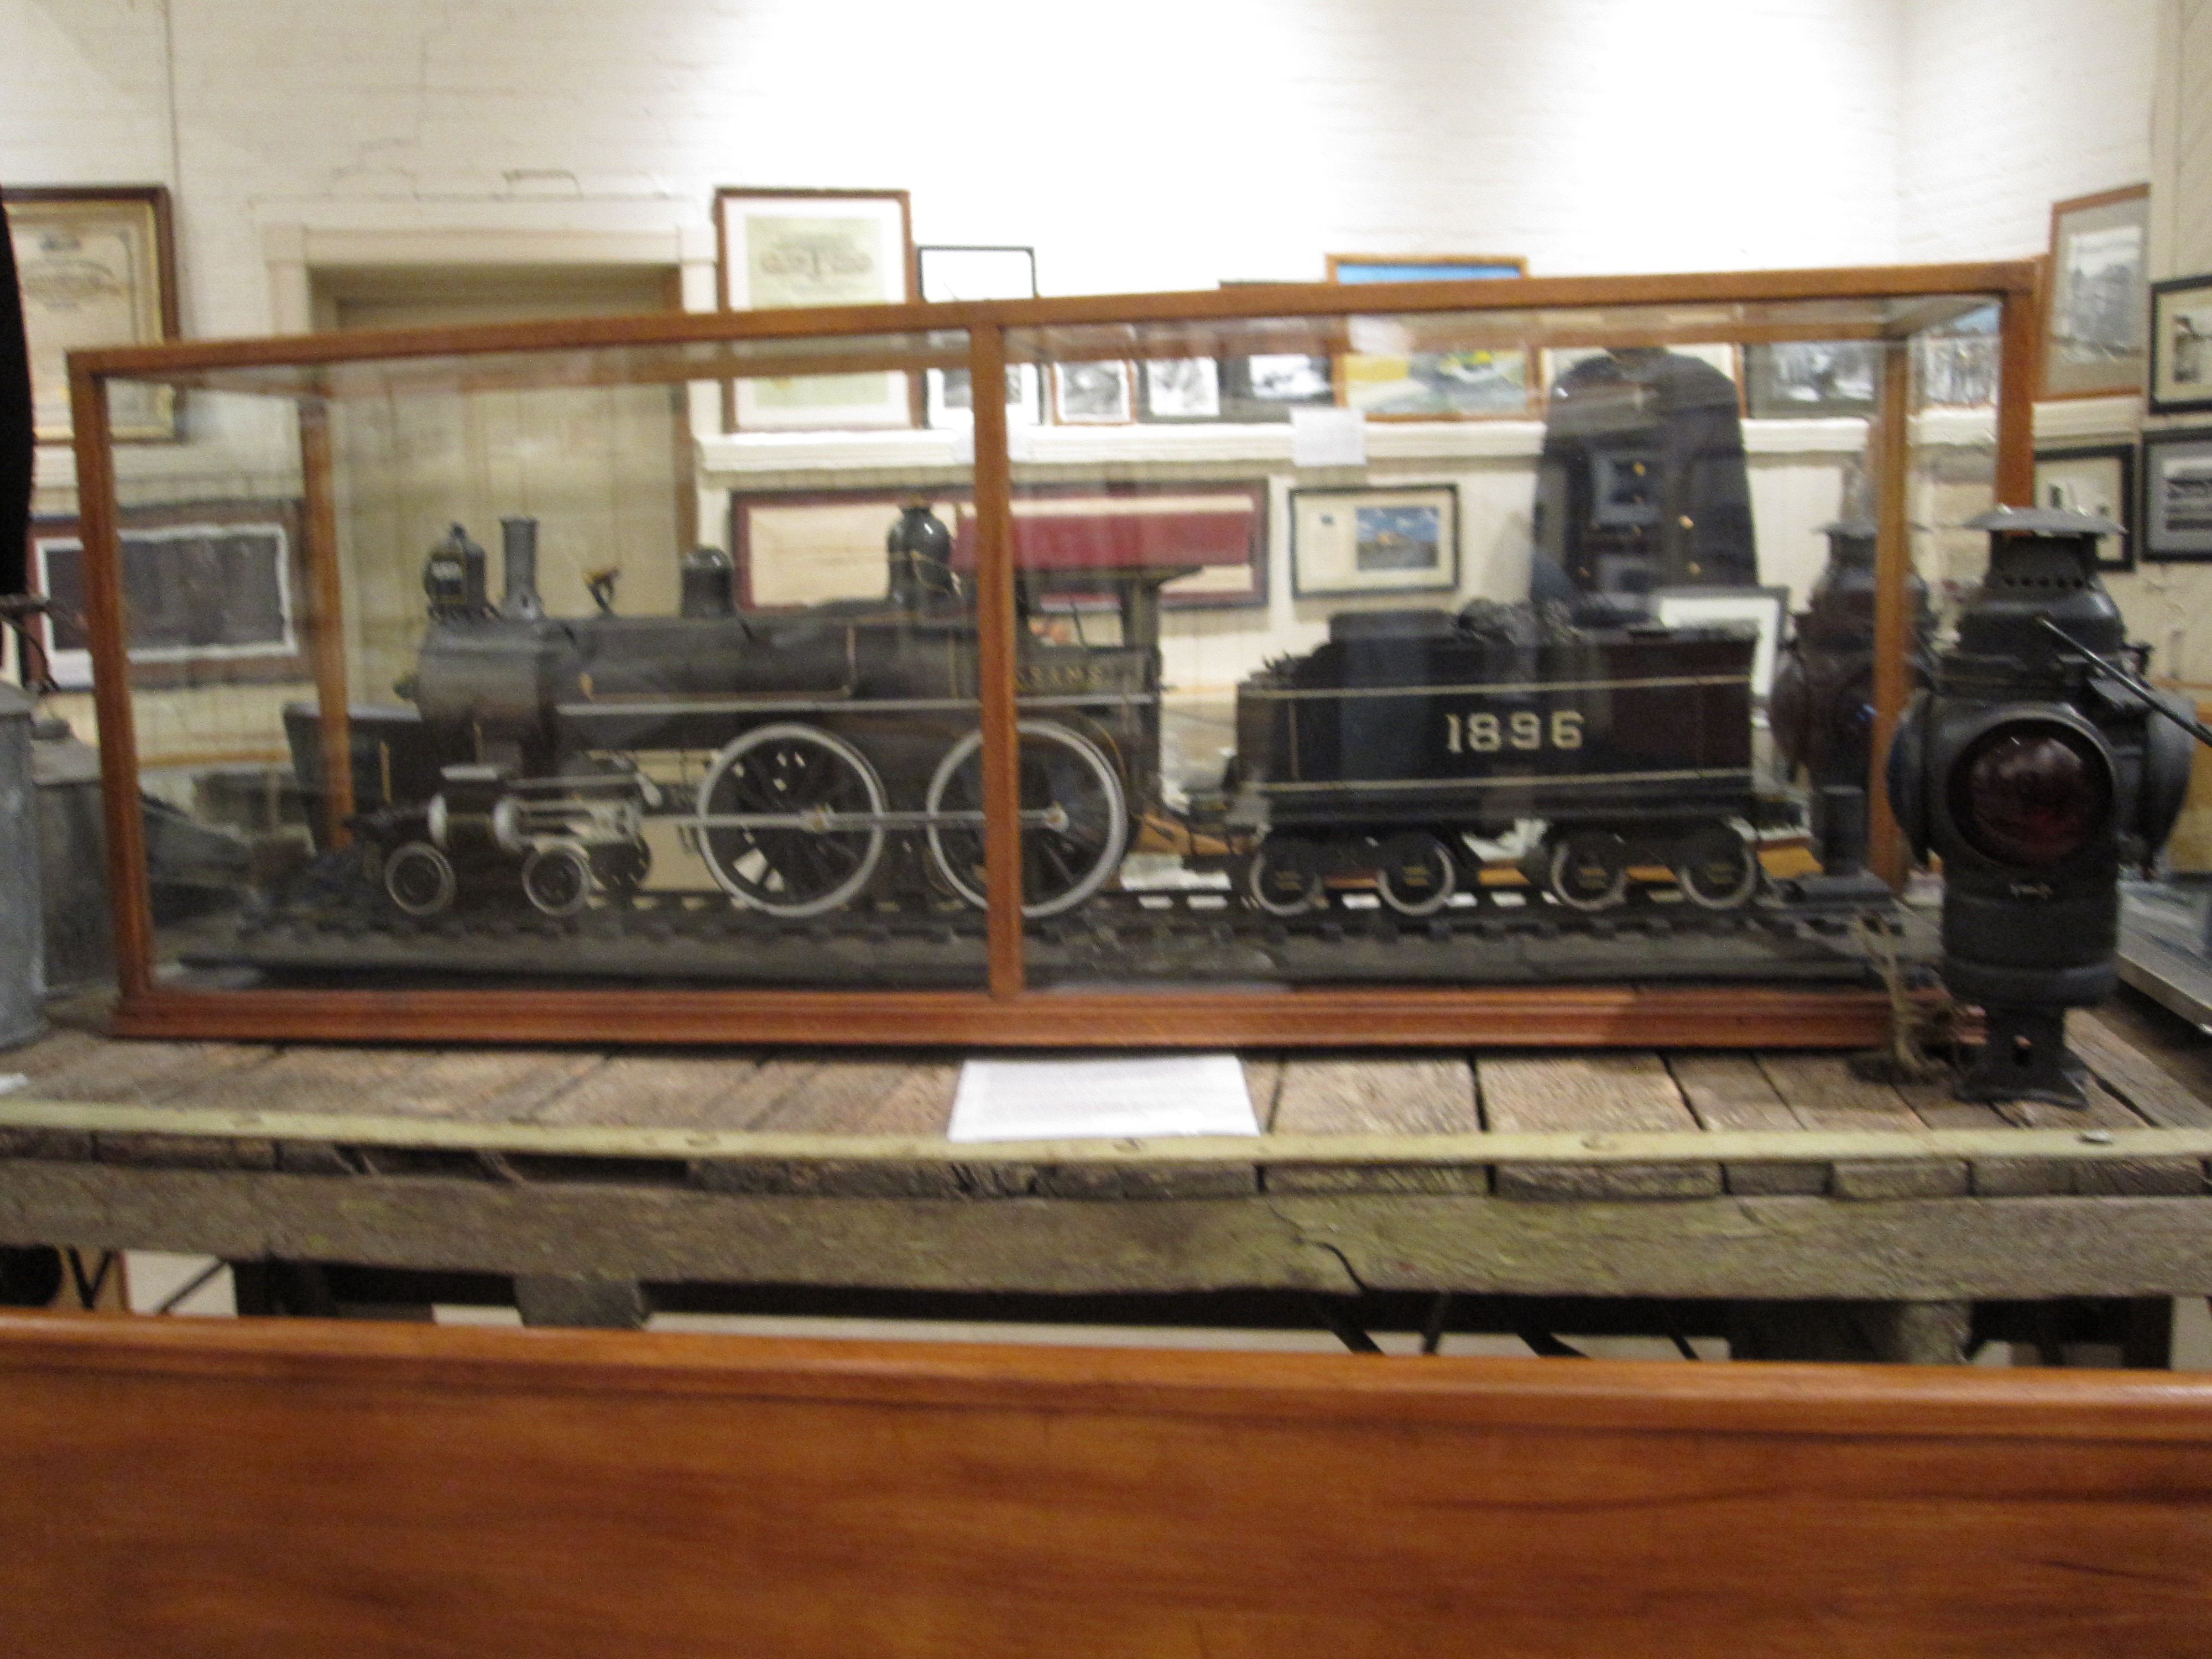 1896 train made by Earl Kimball